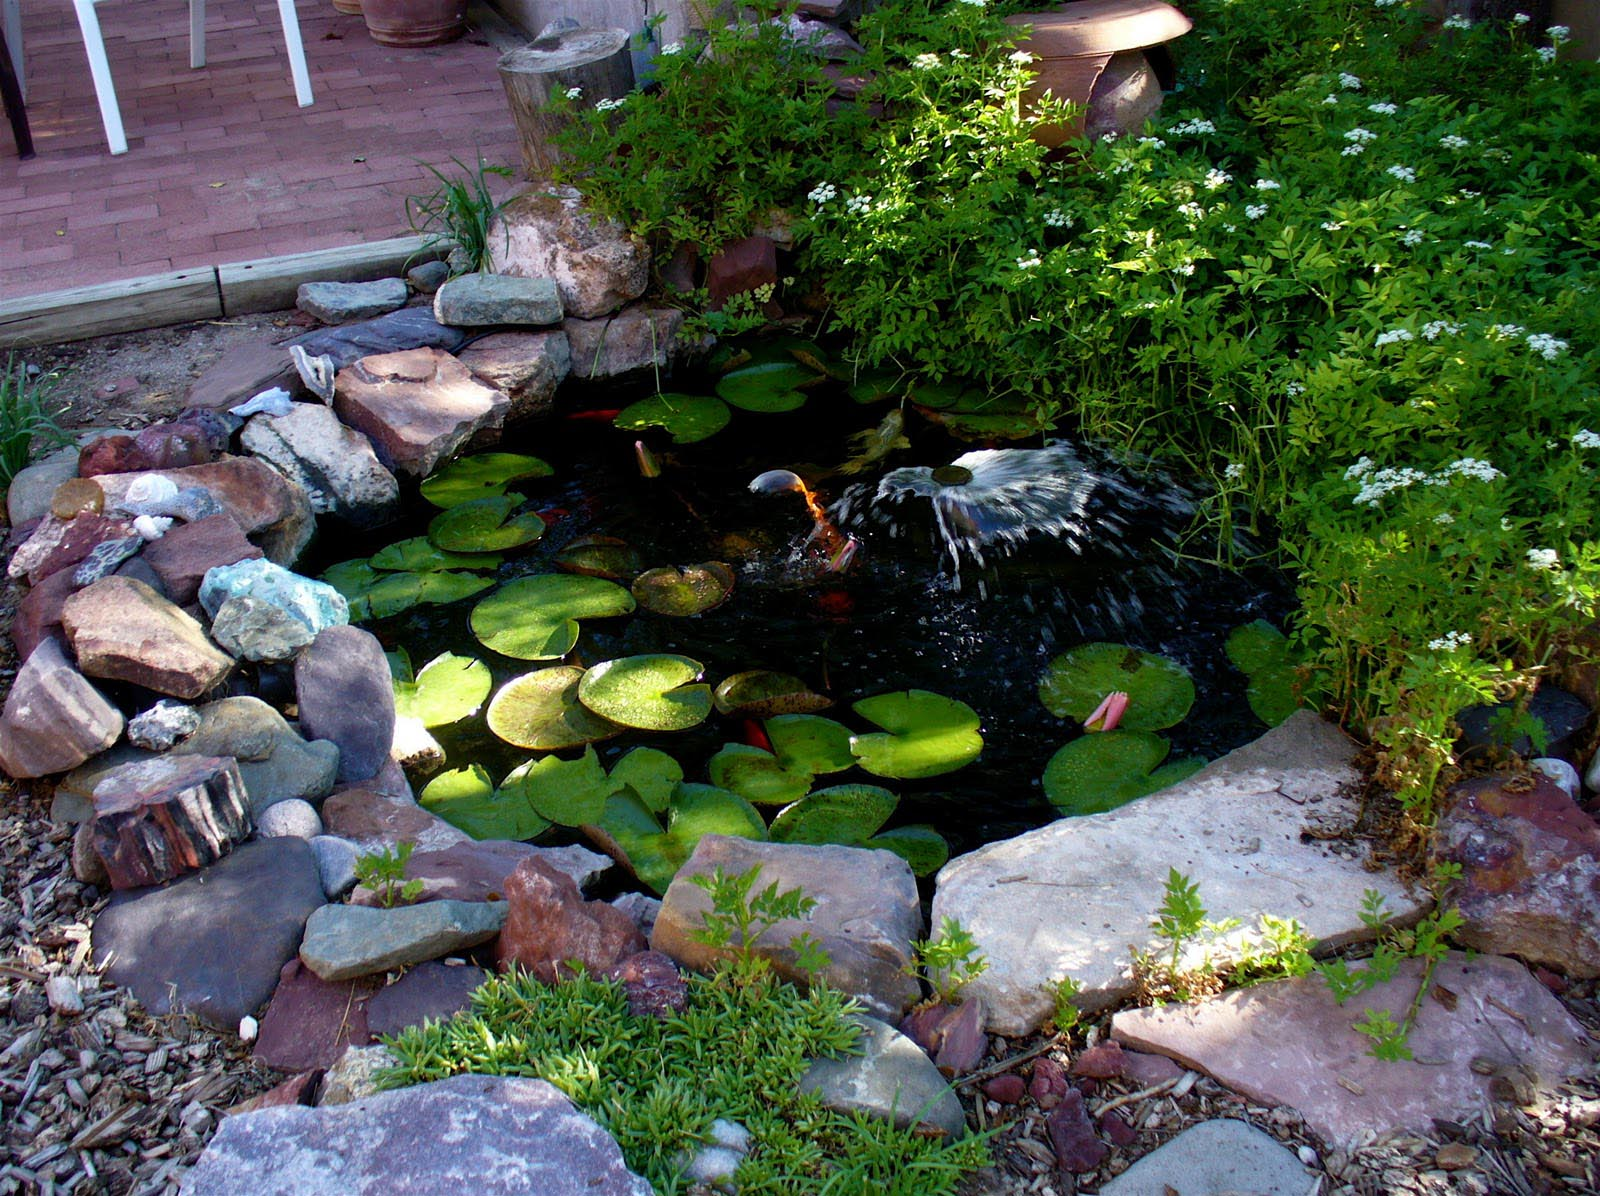 Garden fish pond ideas backyard design ideas for Koi pond garden